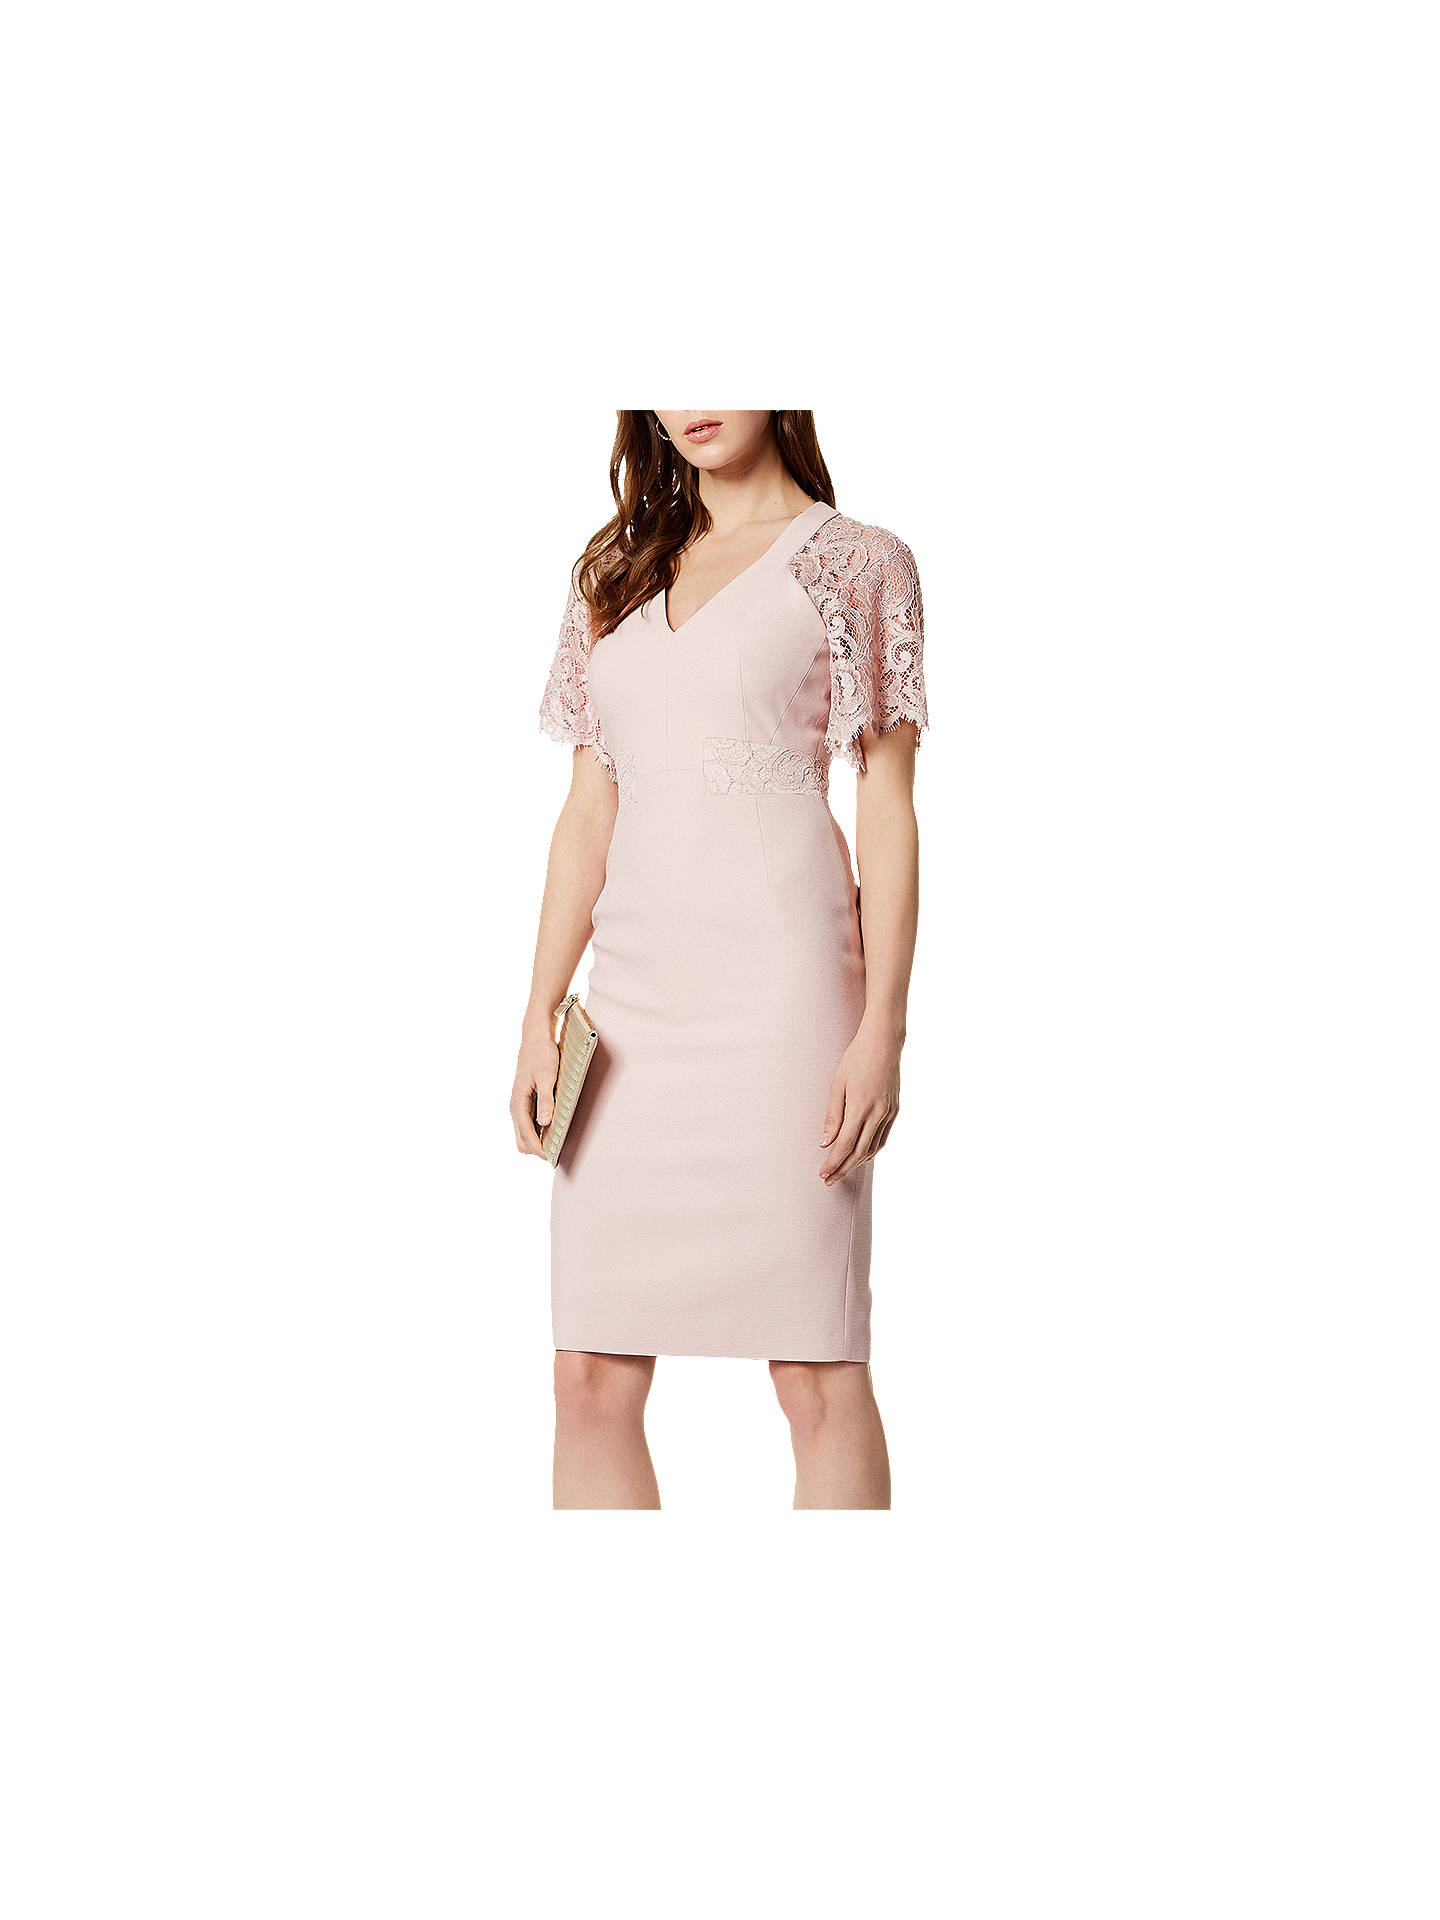 BuyKaren Millen Lace Sleeve Dress, Pink, 6 Online at johnlewis.com